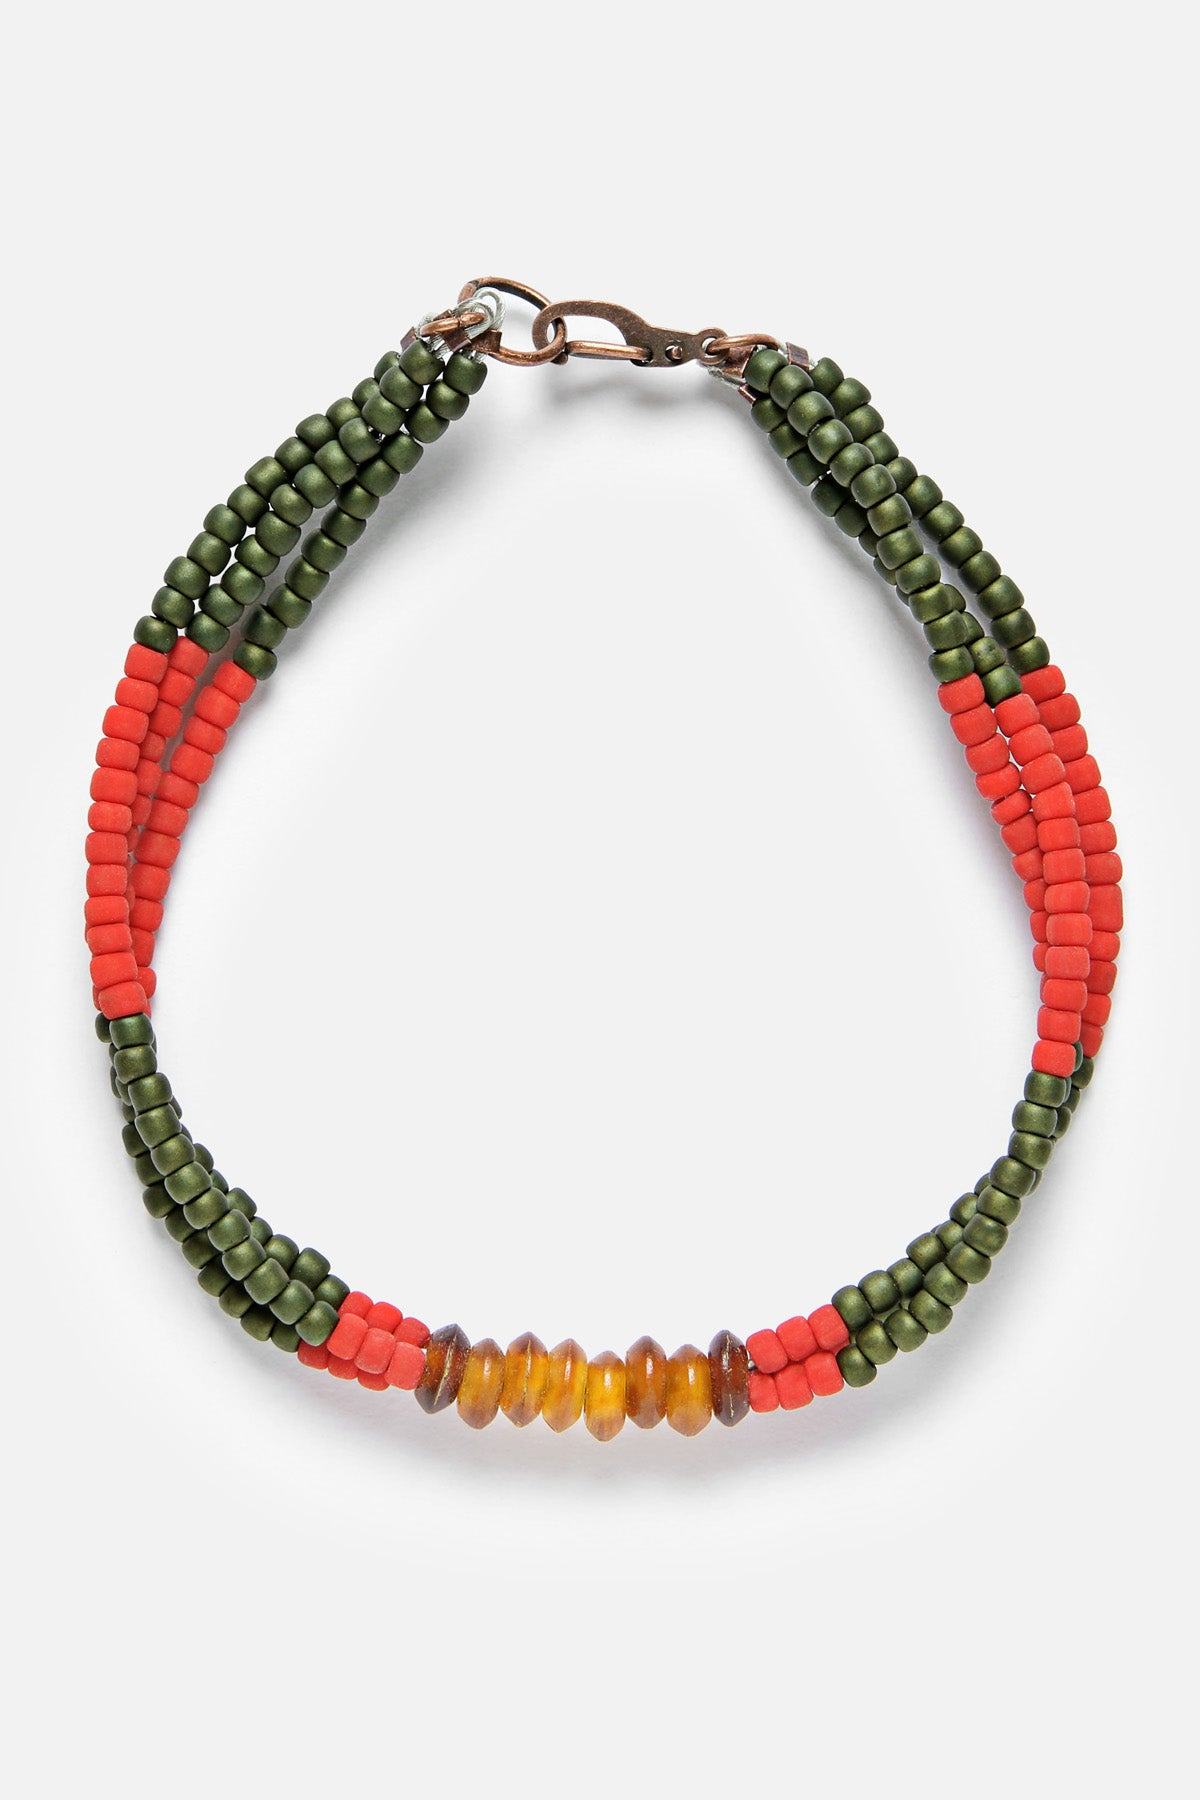 MONTAGNARD BEAD BRACELET IN RED / GREEN / AMBER - Fortune Goods